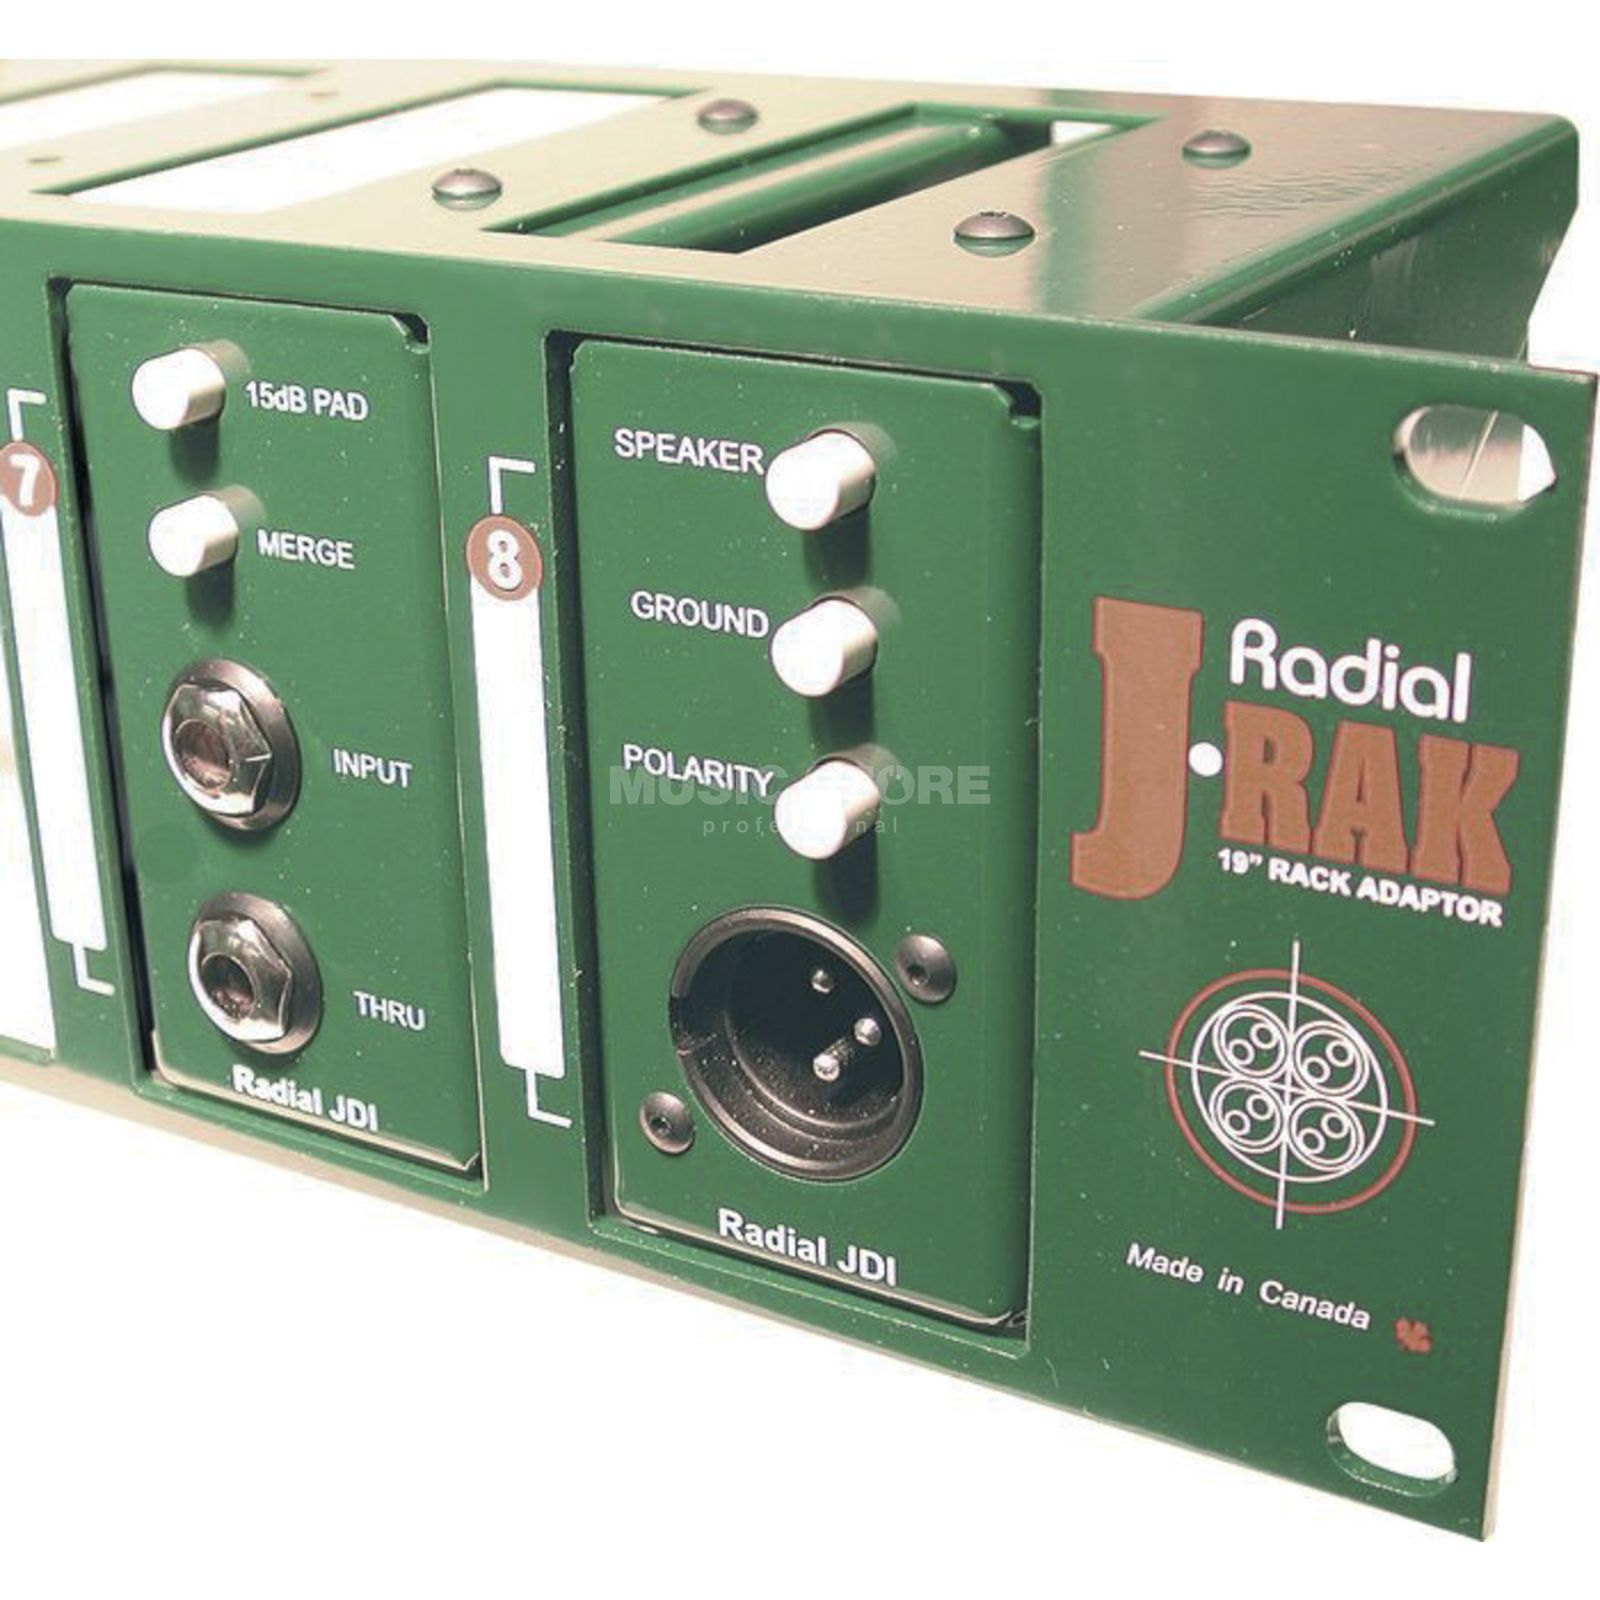 "Radial J-Rak 19"" Rack Adaptor for 8x Radial Di & Splitter Produktbillede"